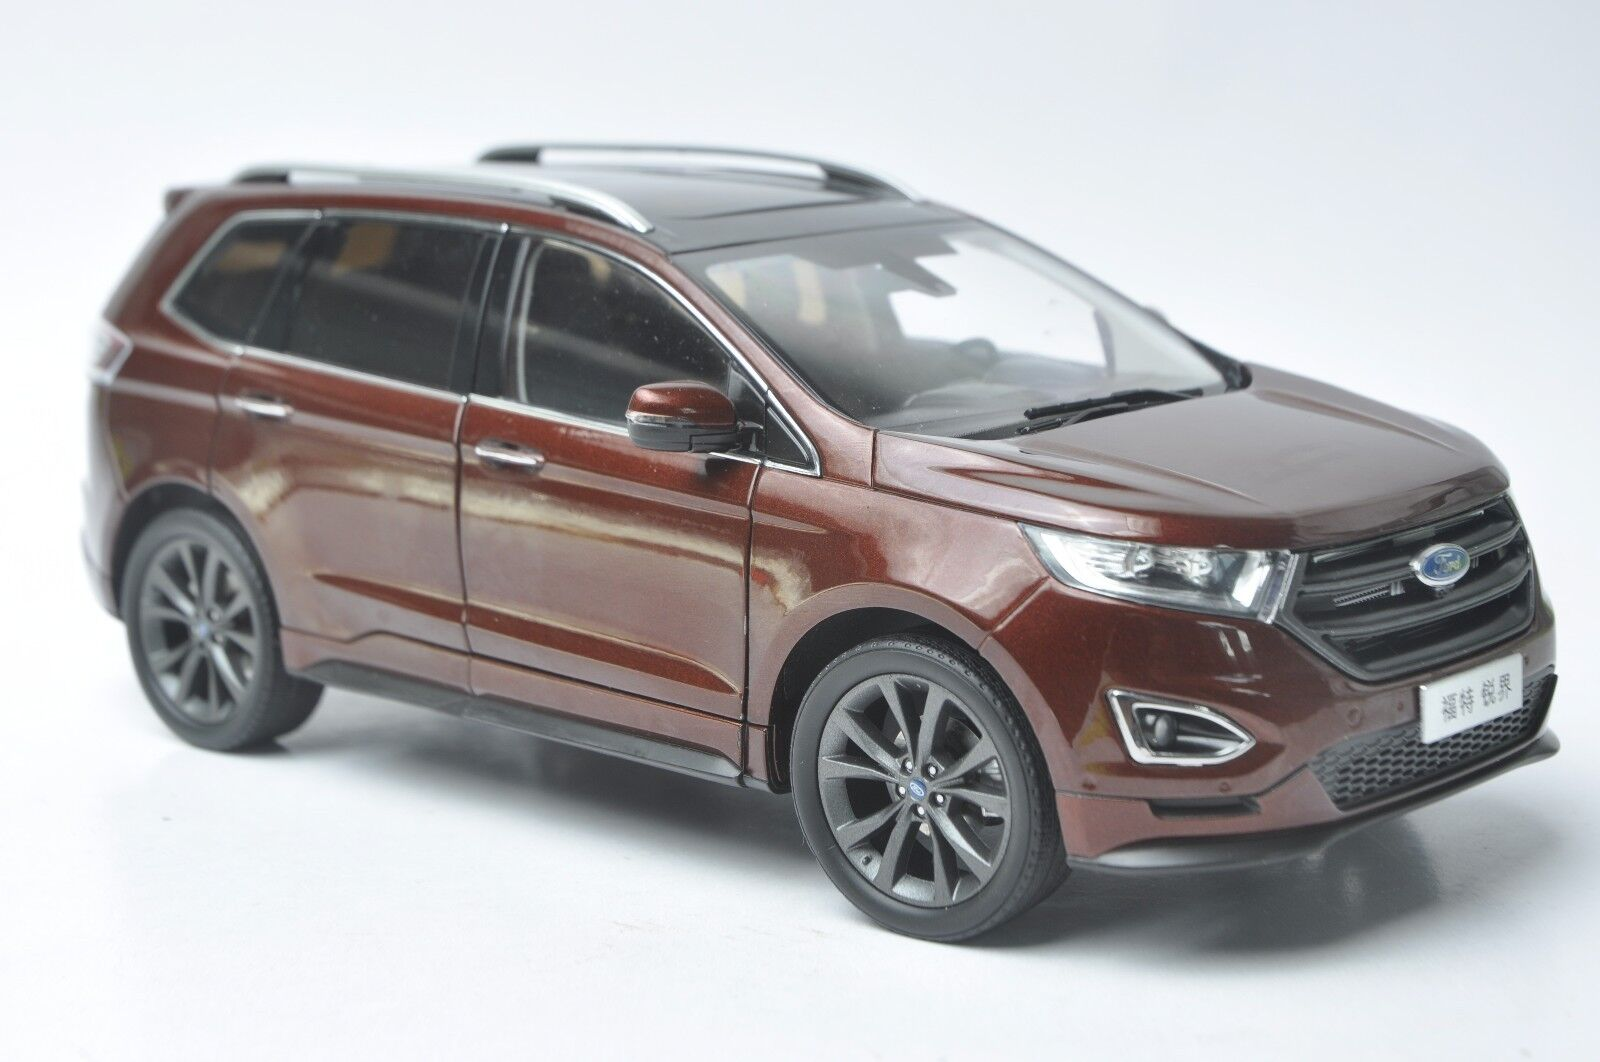 Ford Edge 2015 SUV model in scale 1:18 red